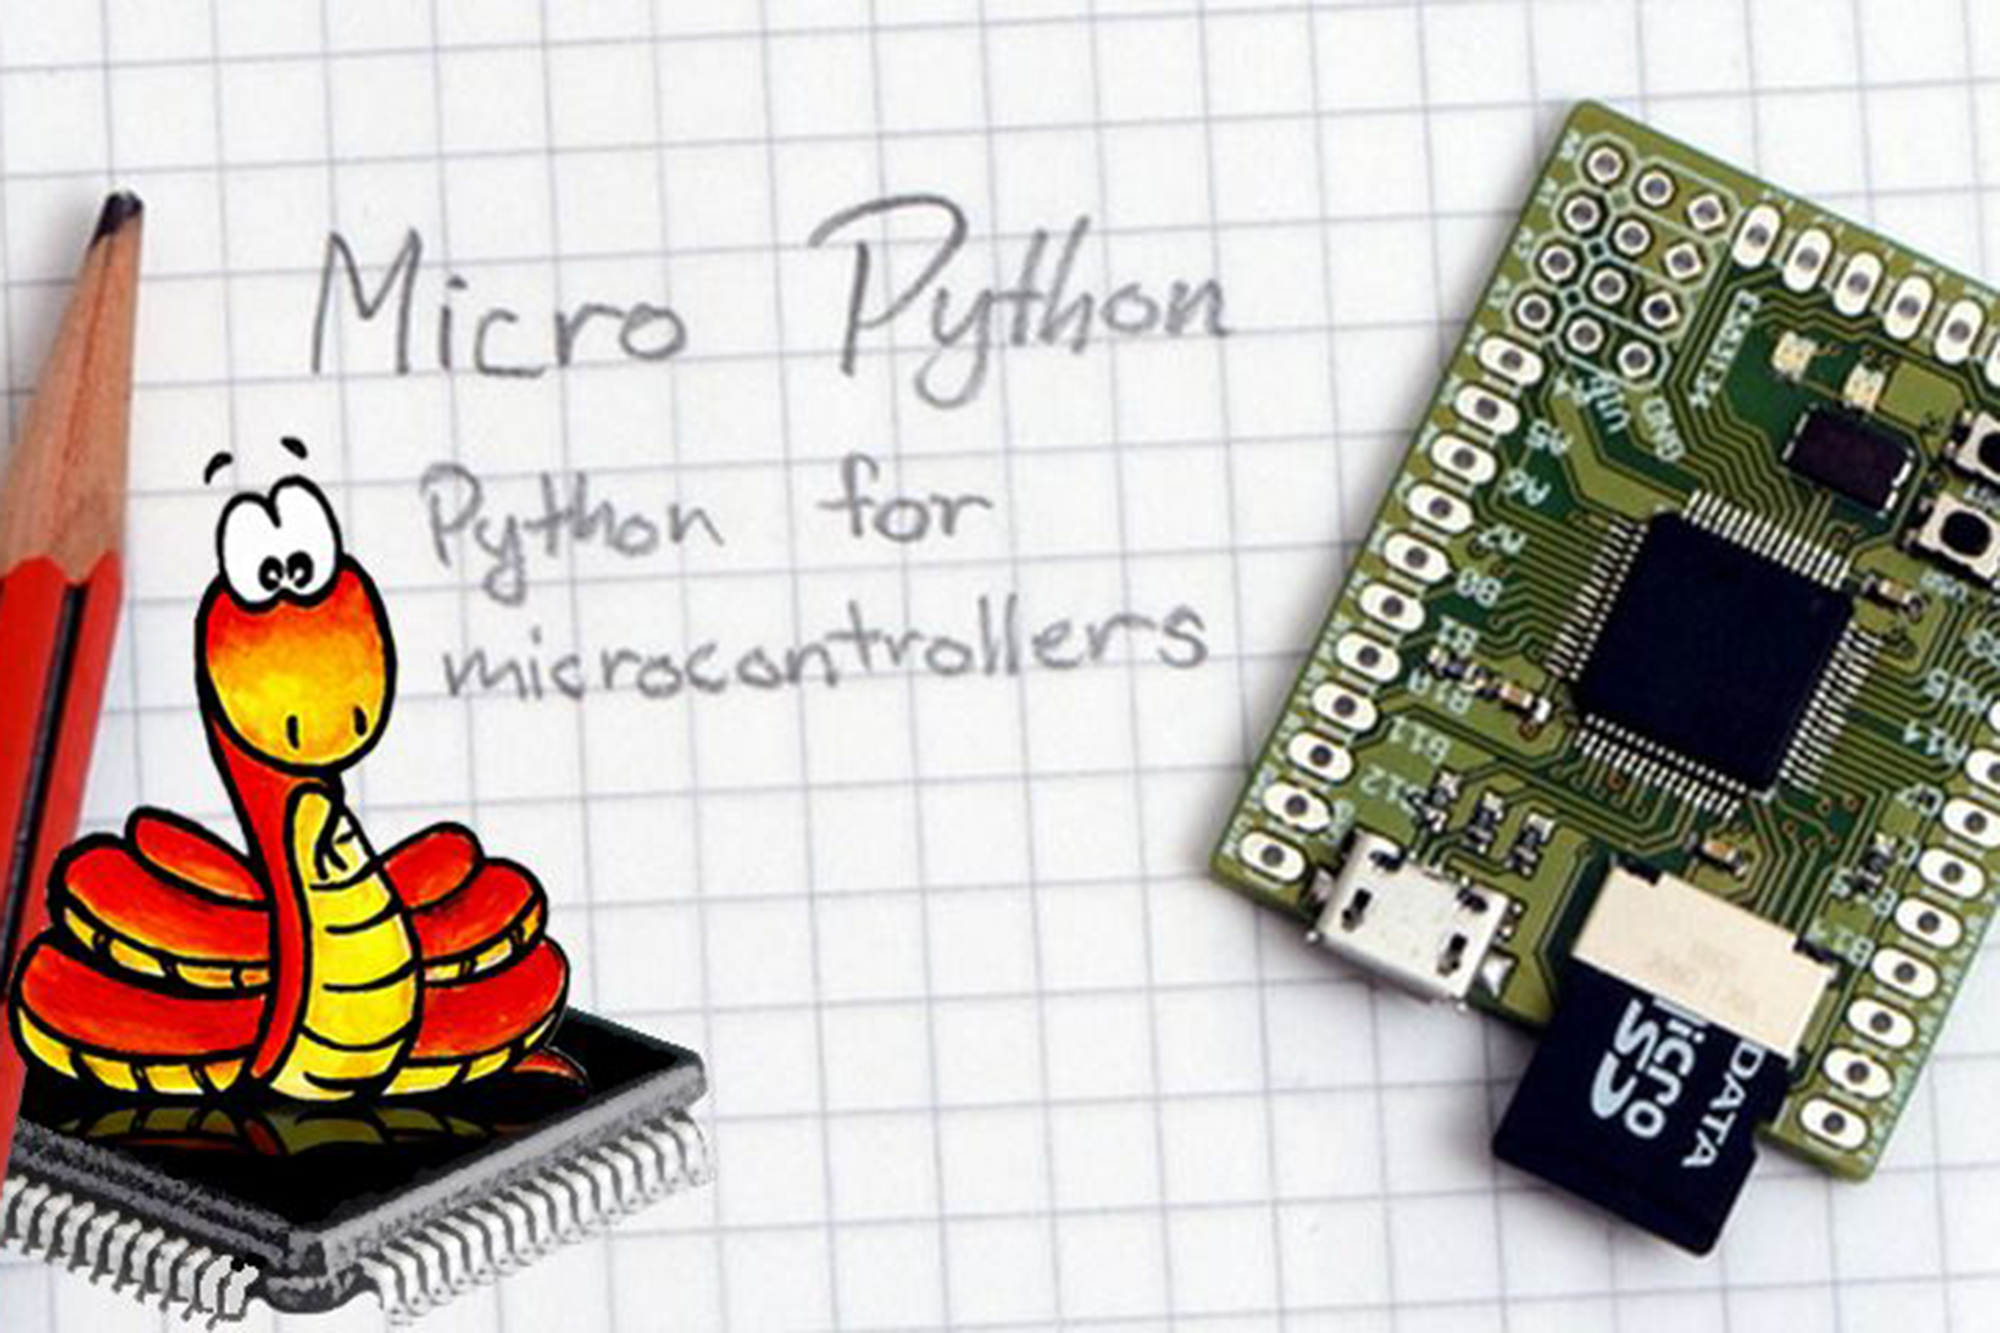 Jaltek completes manufacture of Micro Python Boards